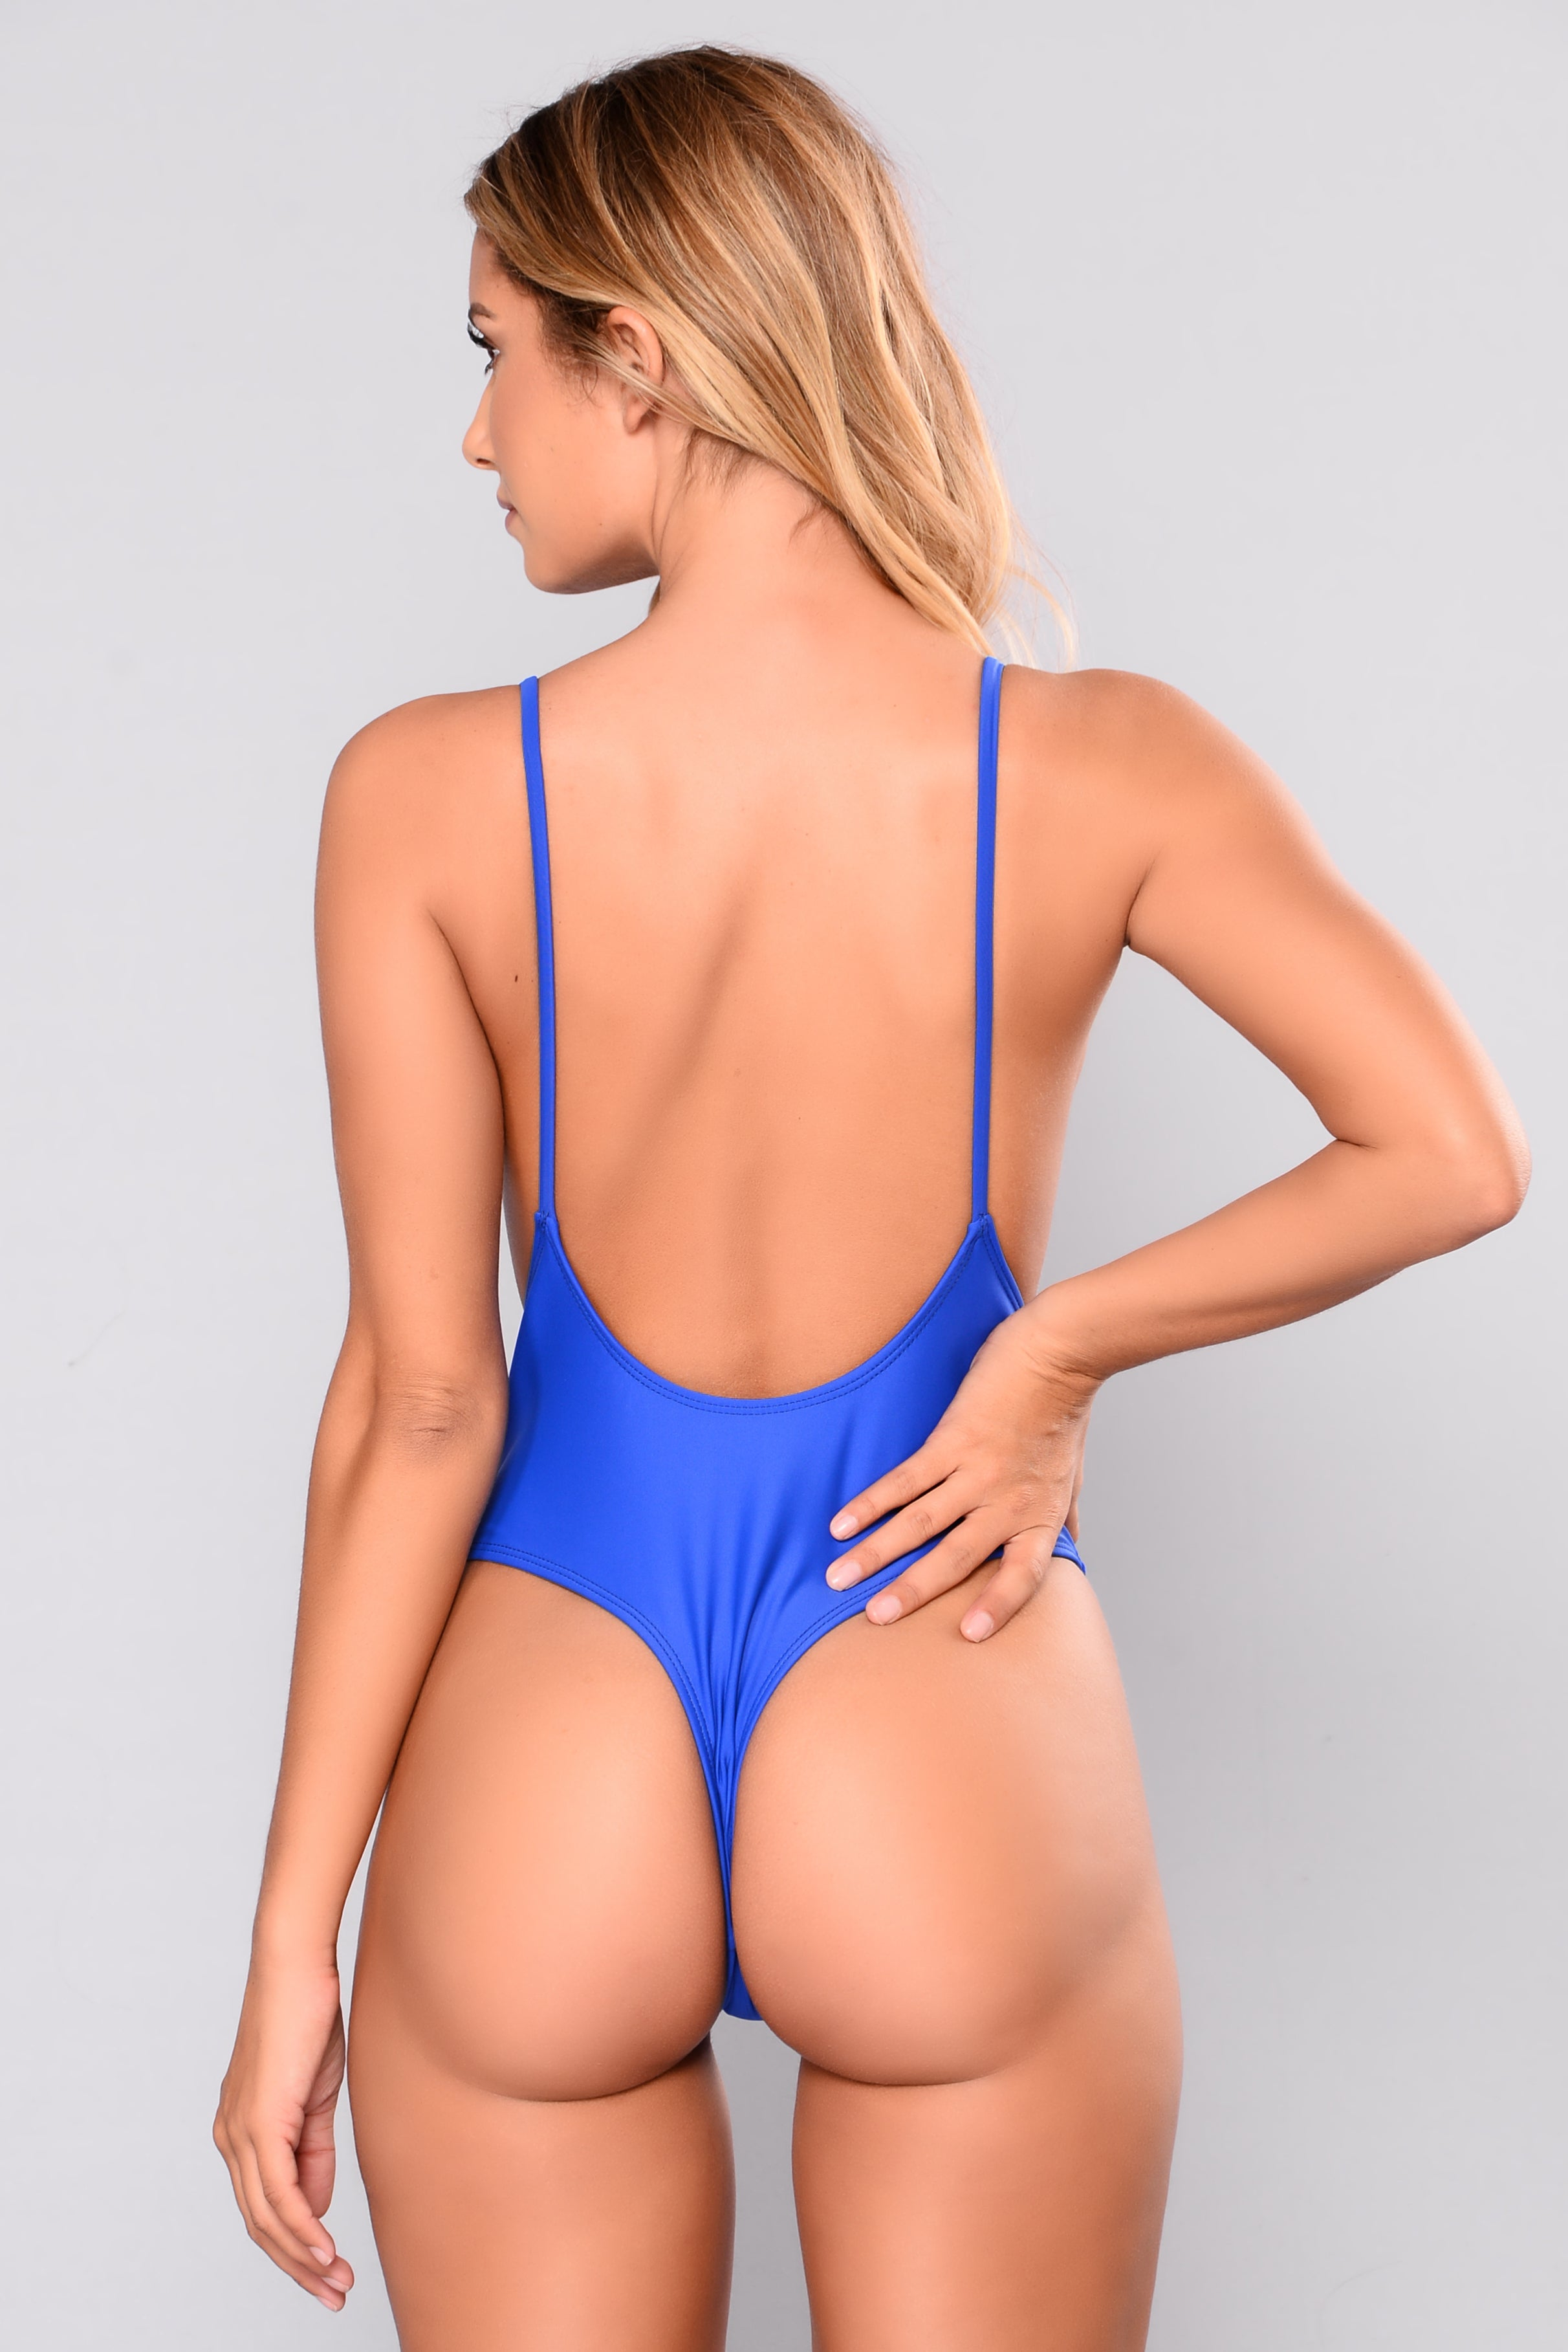 b74723d50f5a5 Making An Impact Thong Swimsuit - Royal